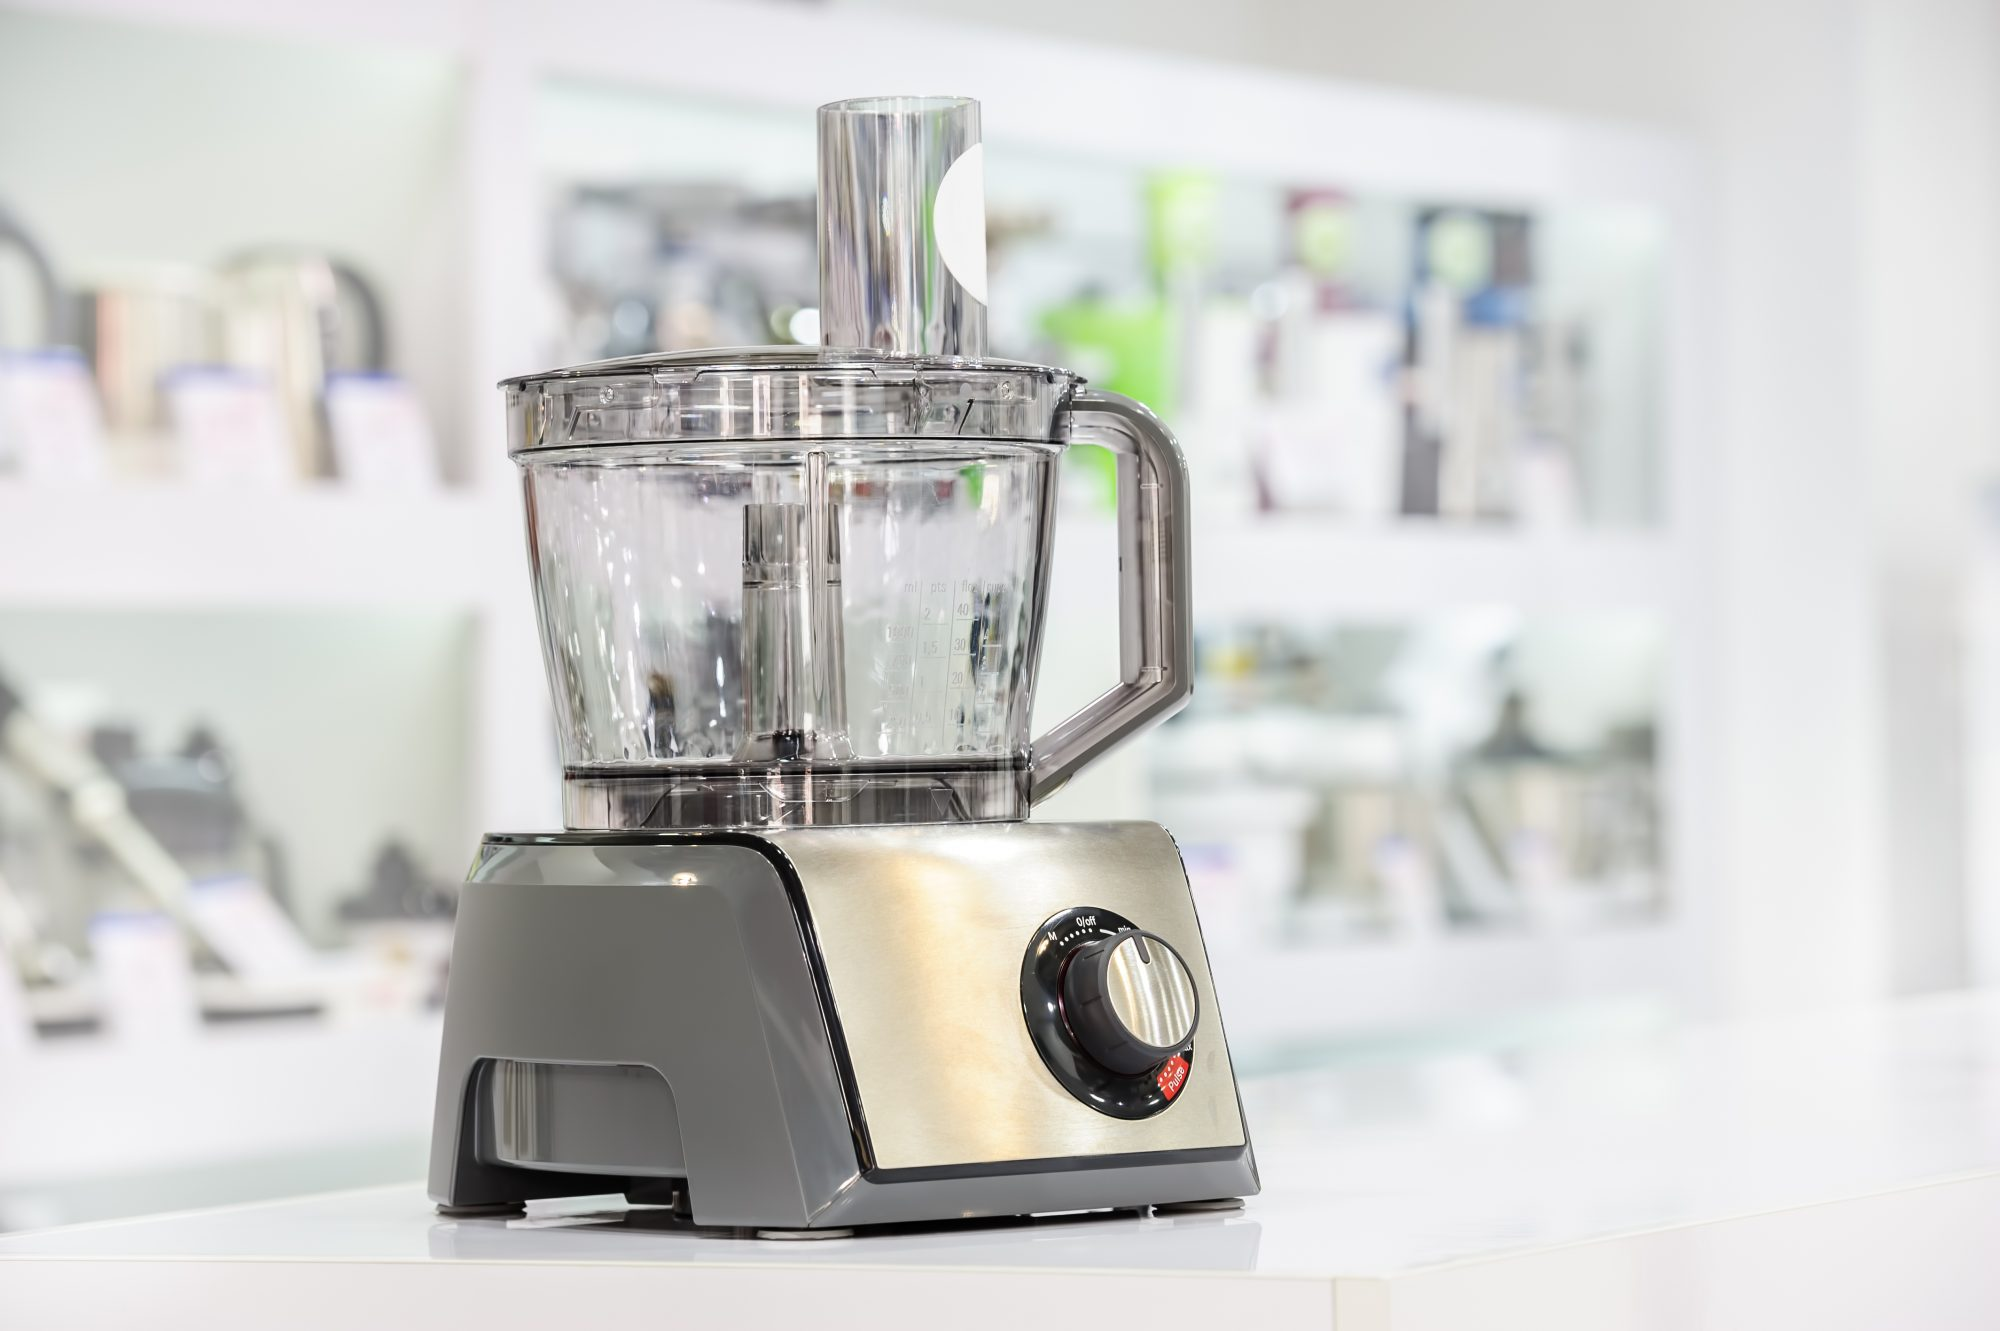 The Size is Right: How to Choose the Right Food Processor For You